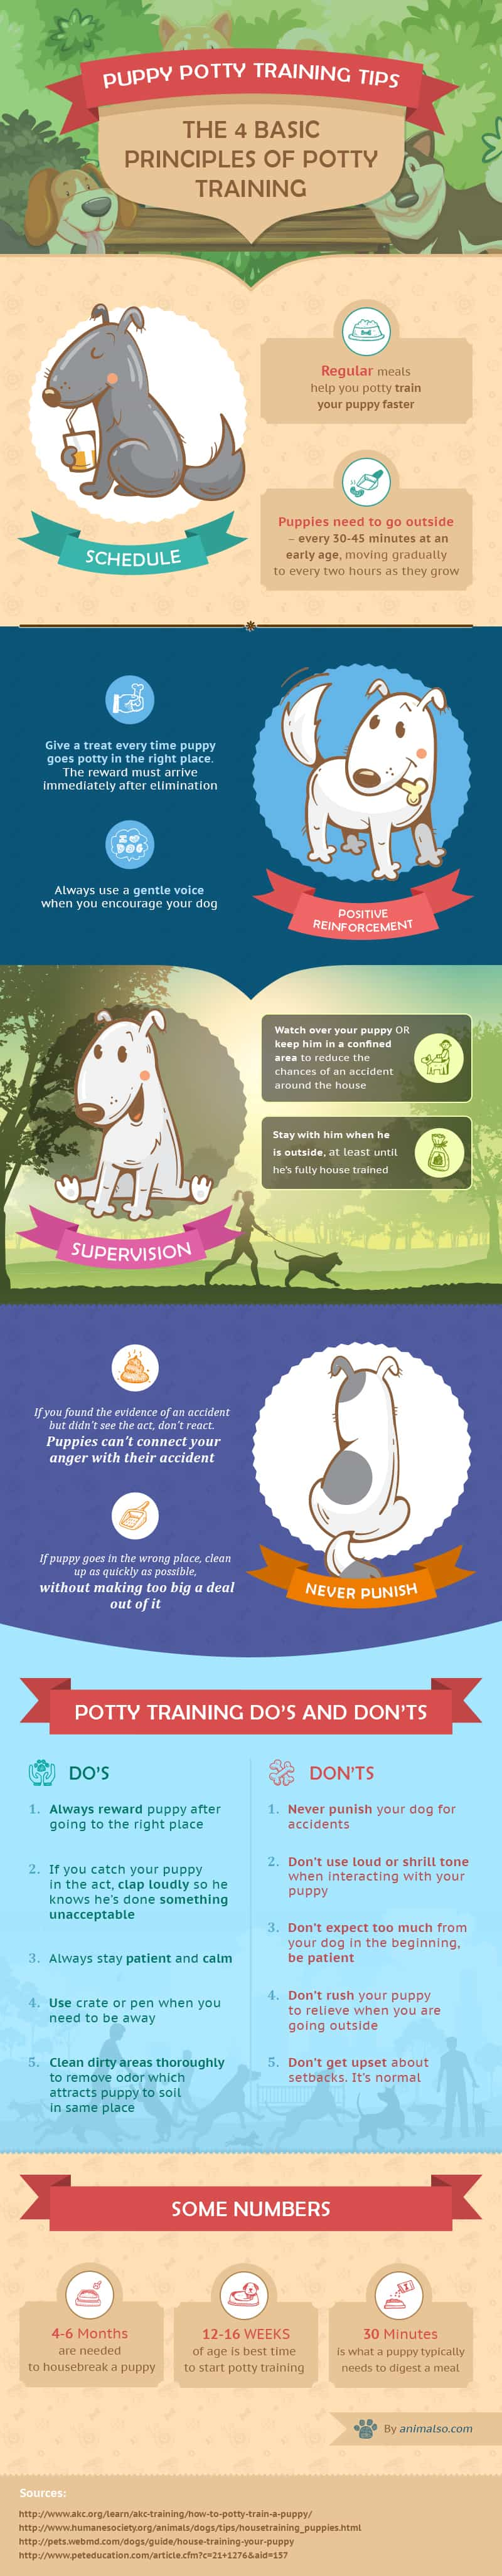 Do's and Don'ts of Potty Training a Puppy [Infographic] | ecogreenlove